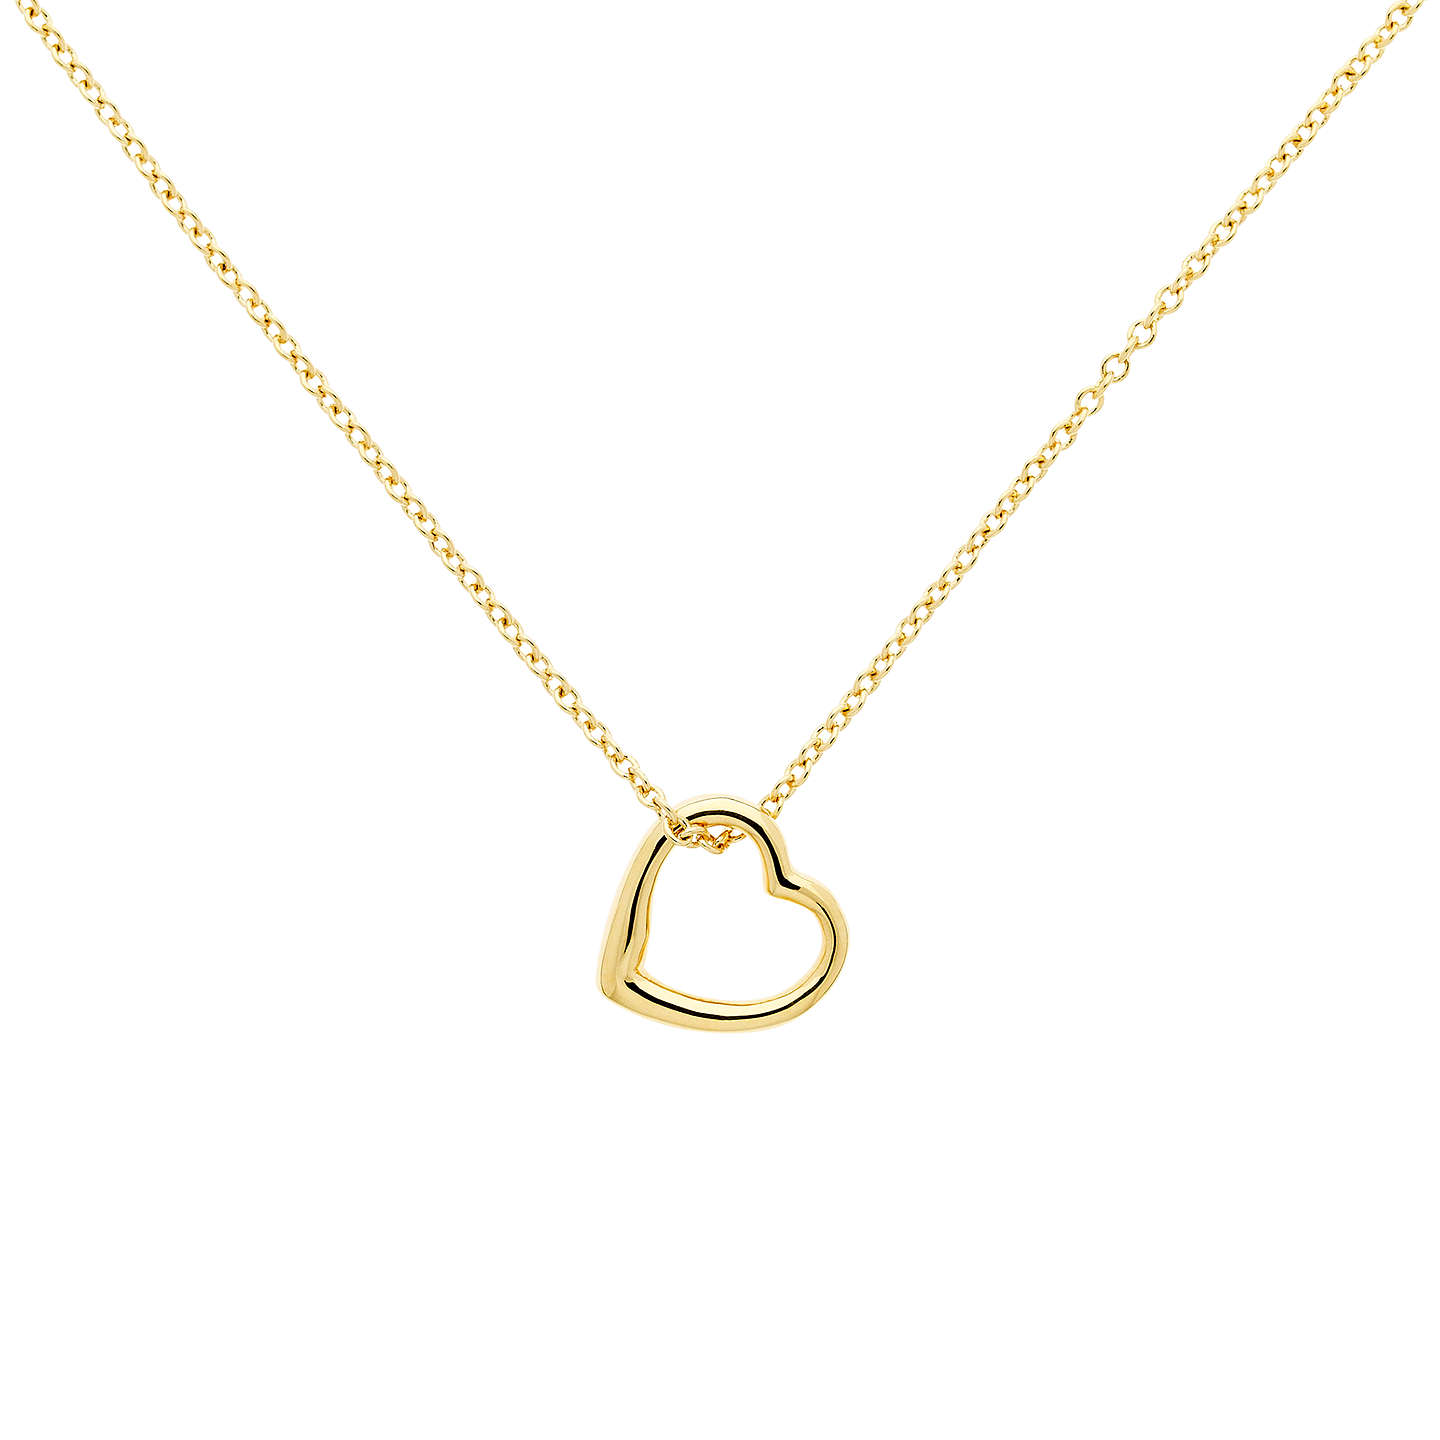 heartmininecklacezilver necklace mini charm heart mamaloves